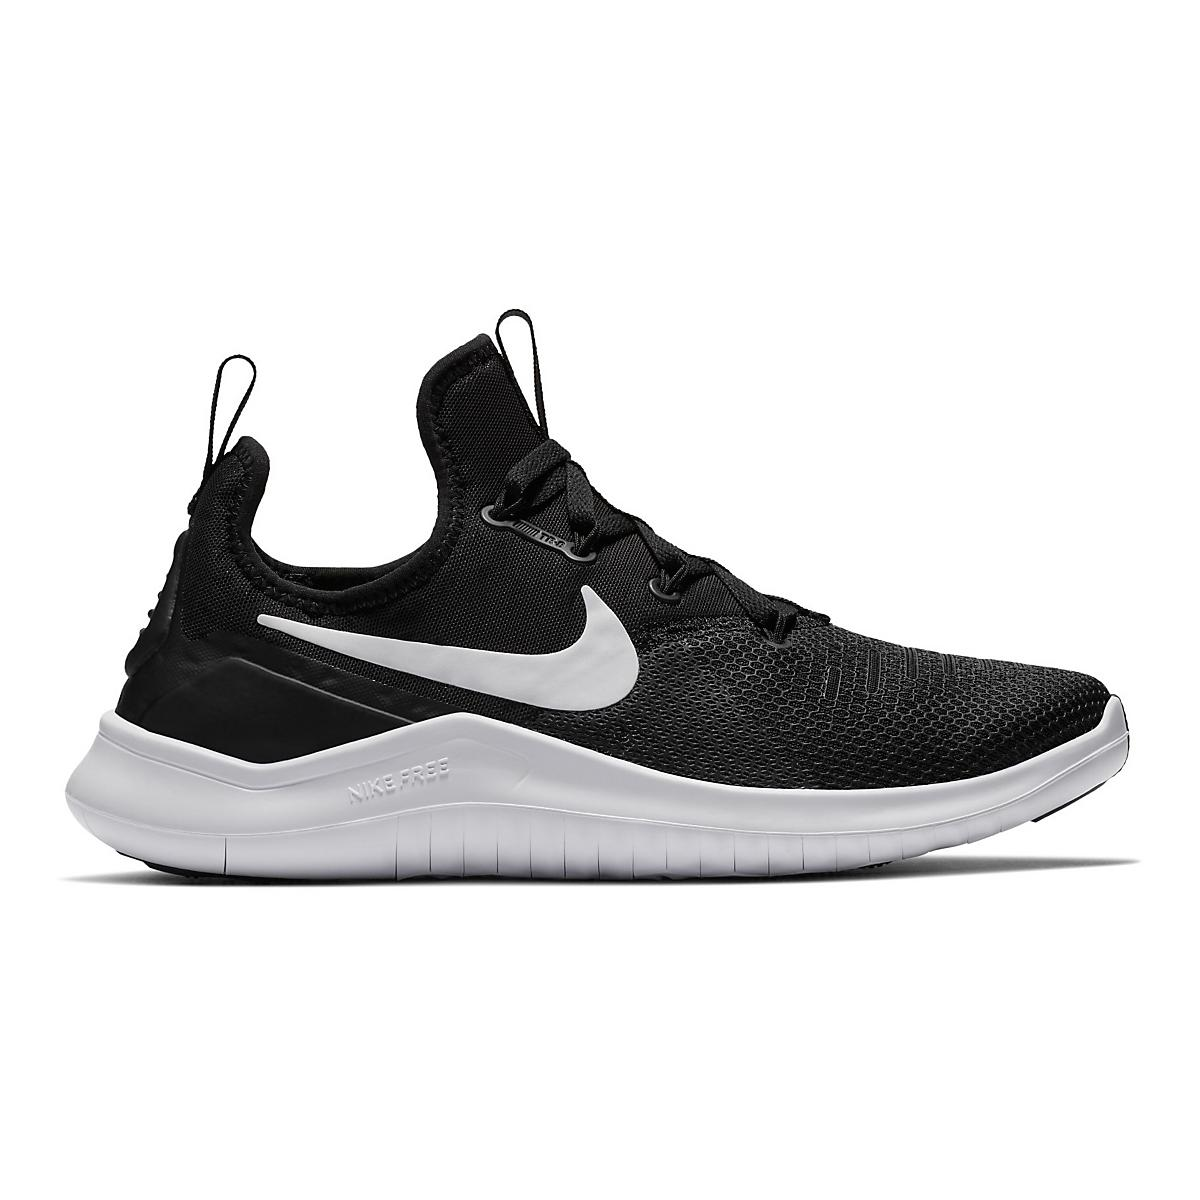 e76a16ebeac45 Womens Nike Free TR 8 Cross Training Shoe at Road Runner Sports